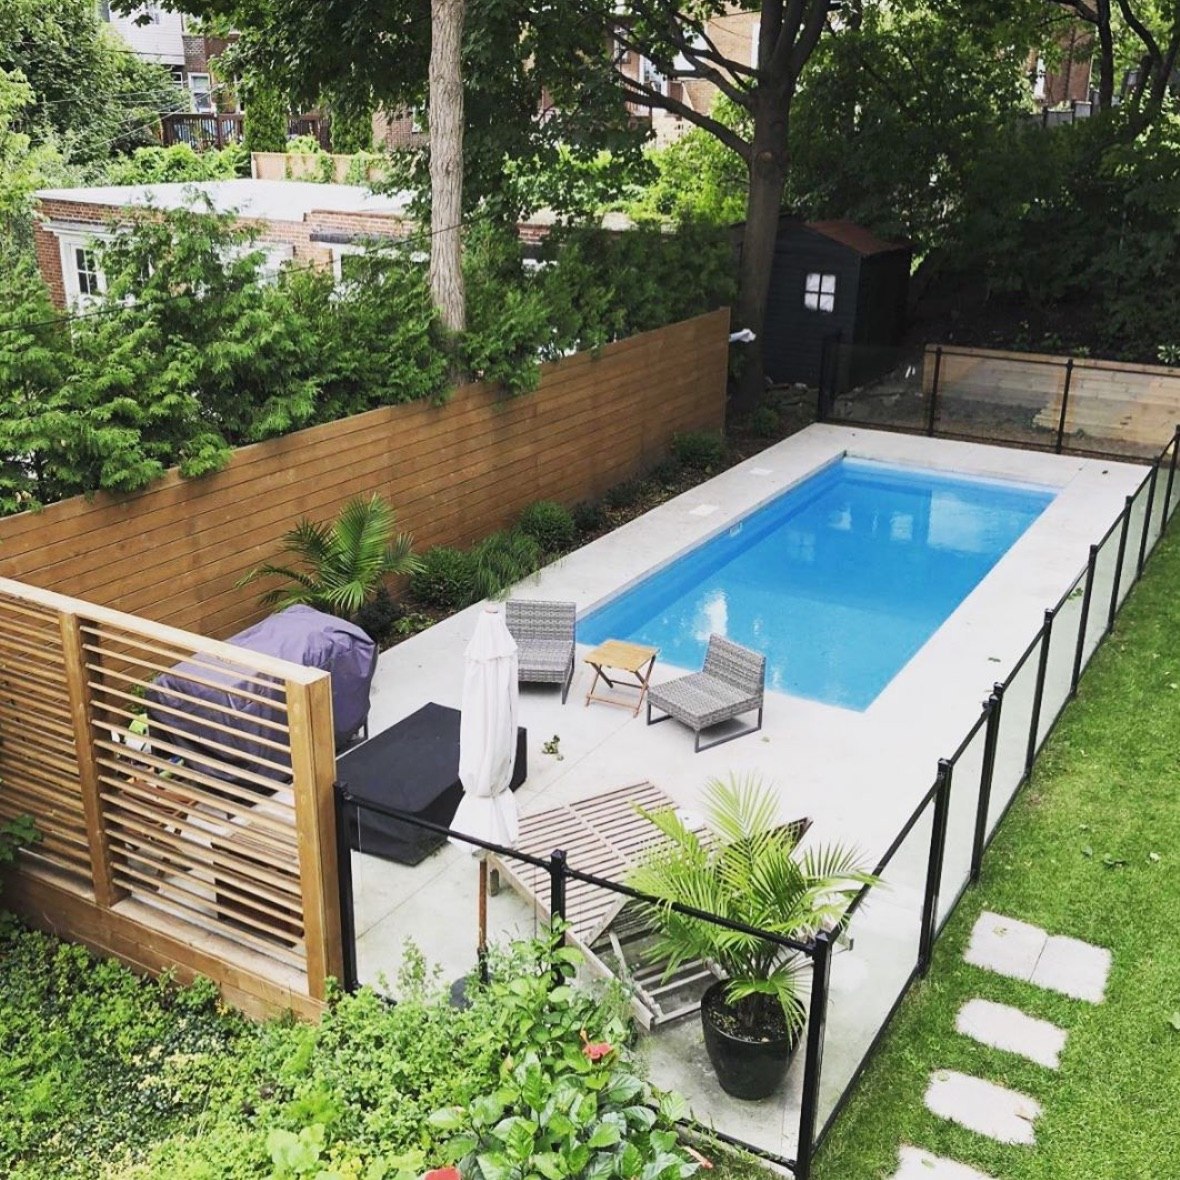 Small pool with a bbq area